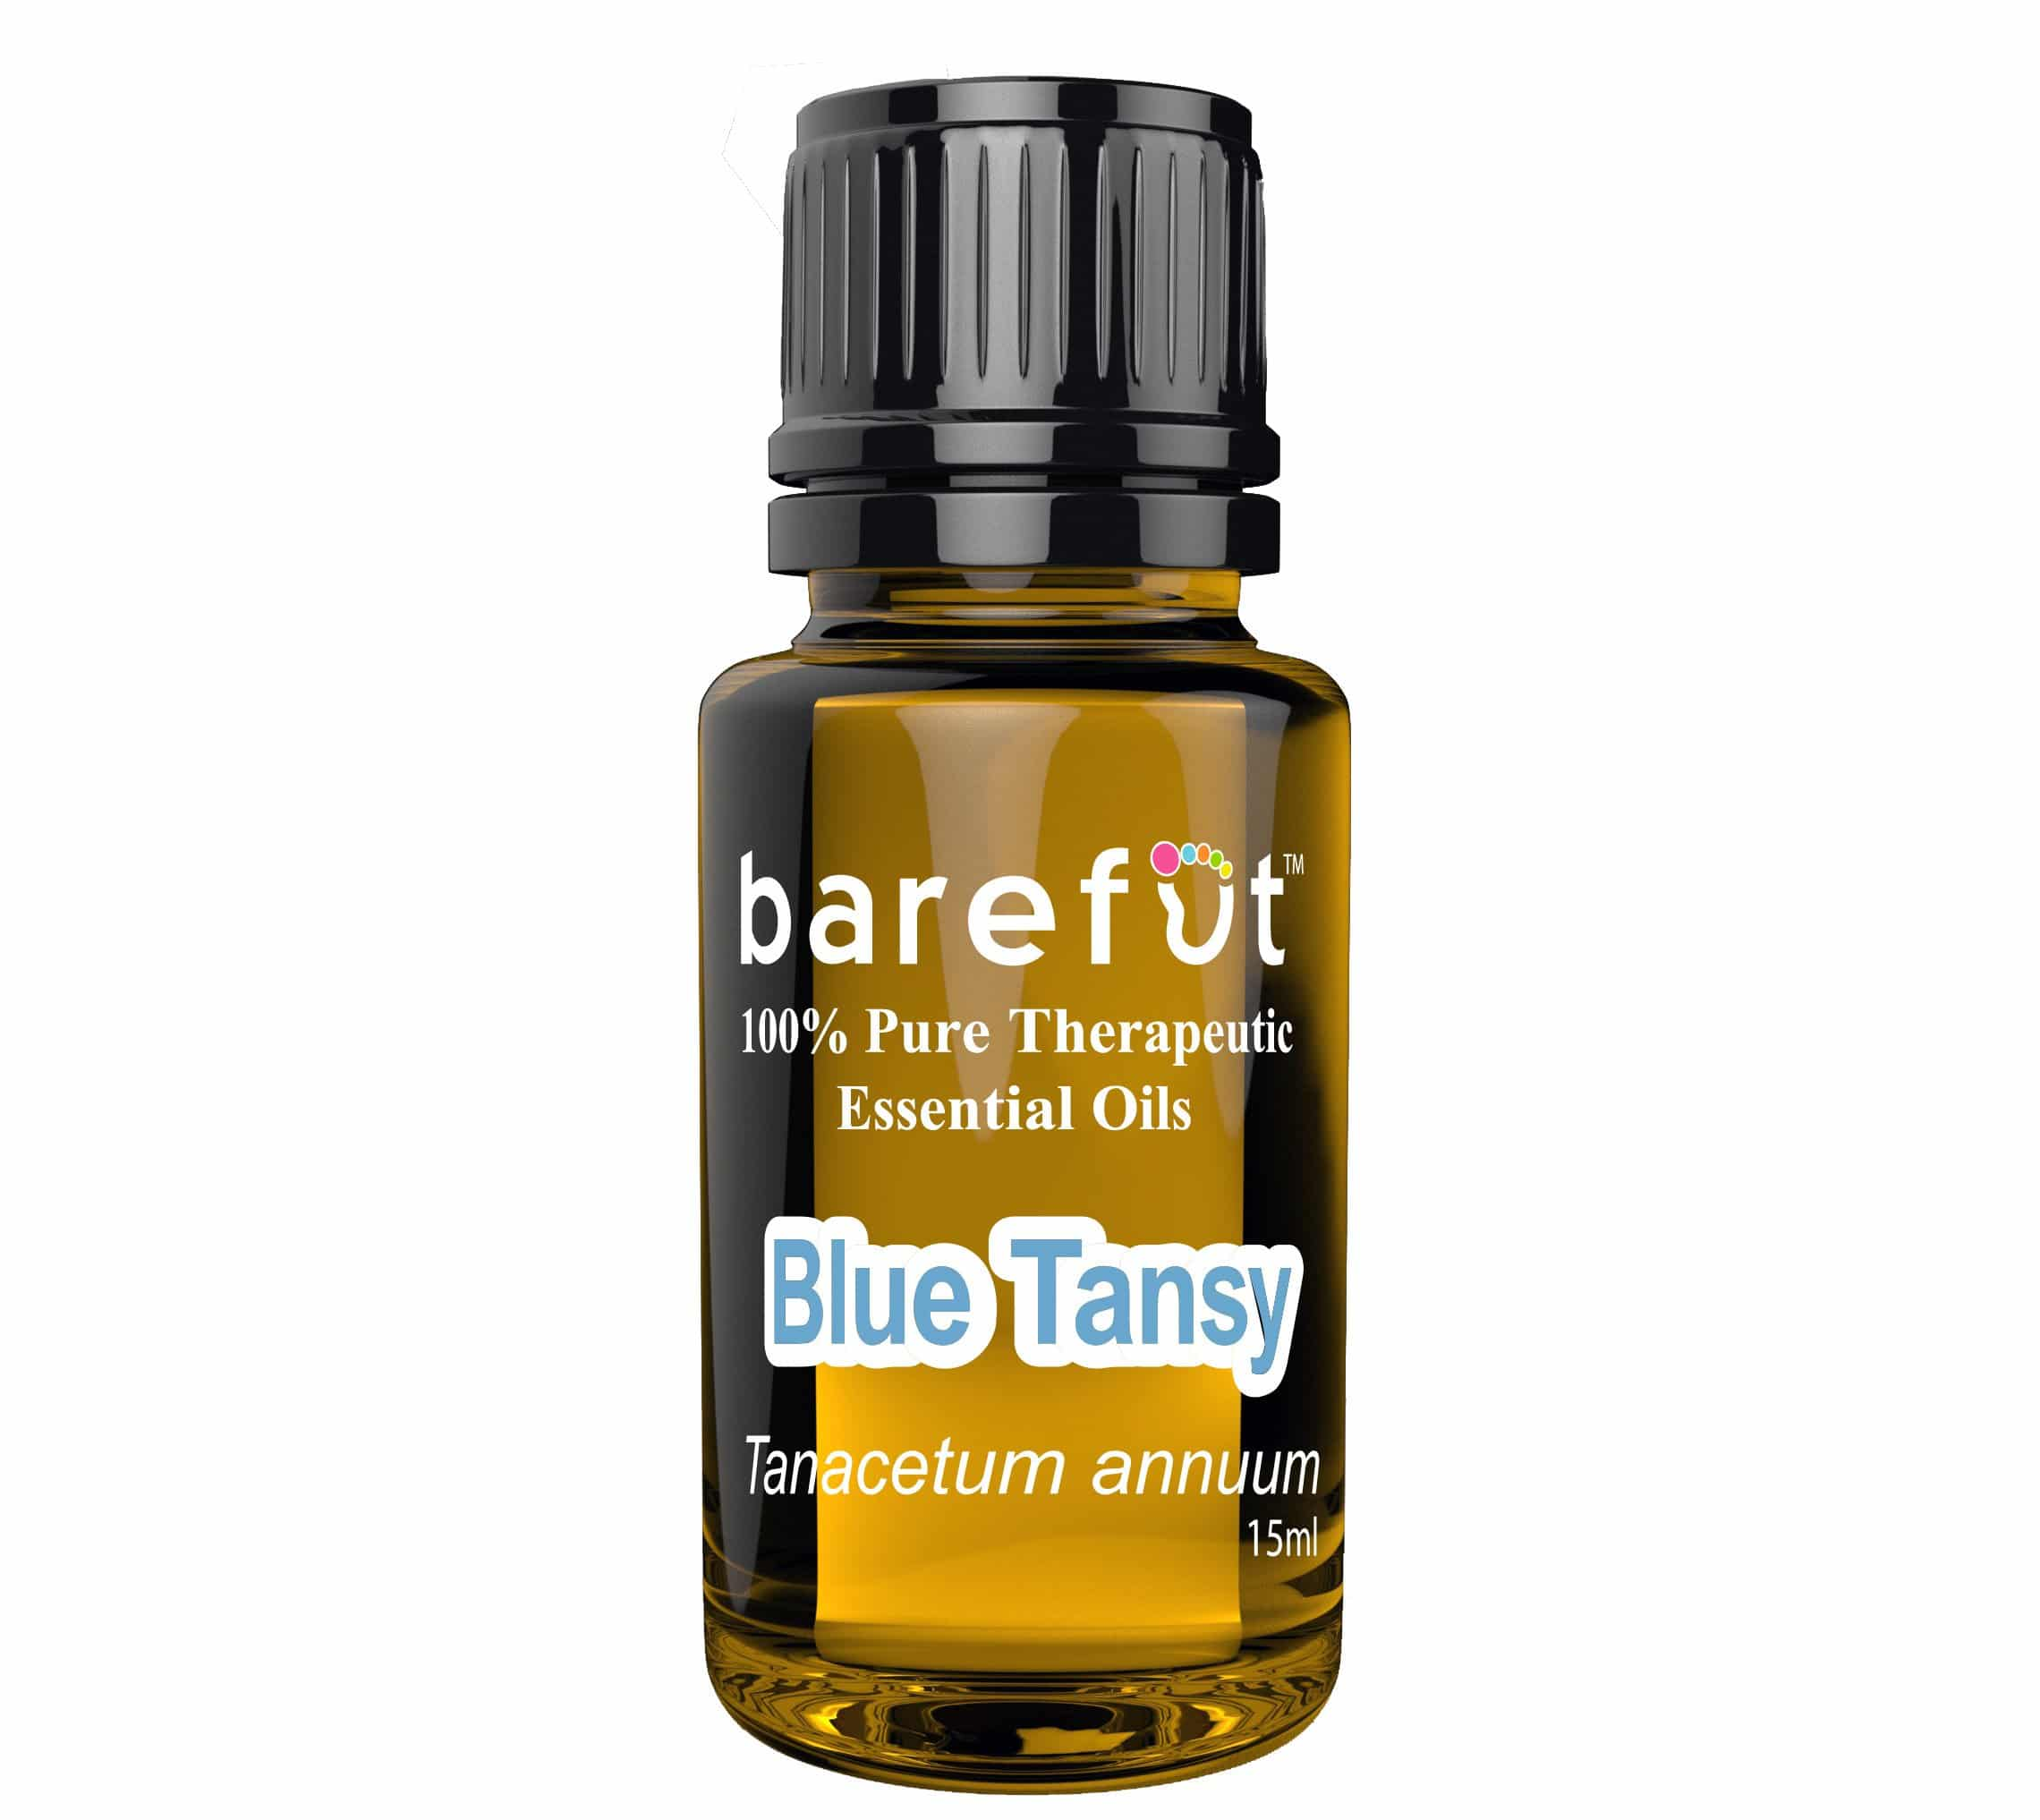 Blue Tansy Essential Oil Barefut